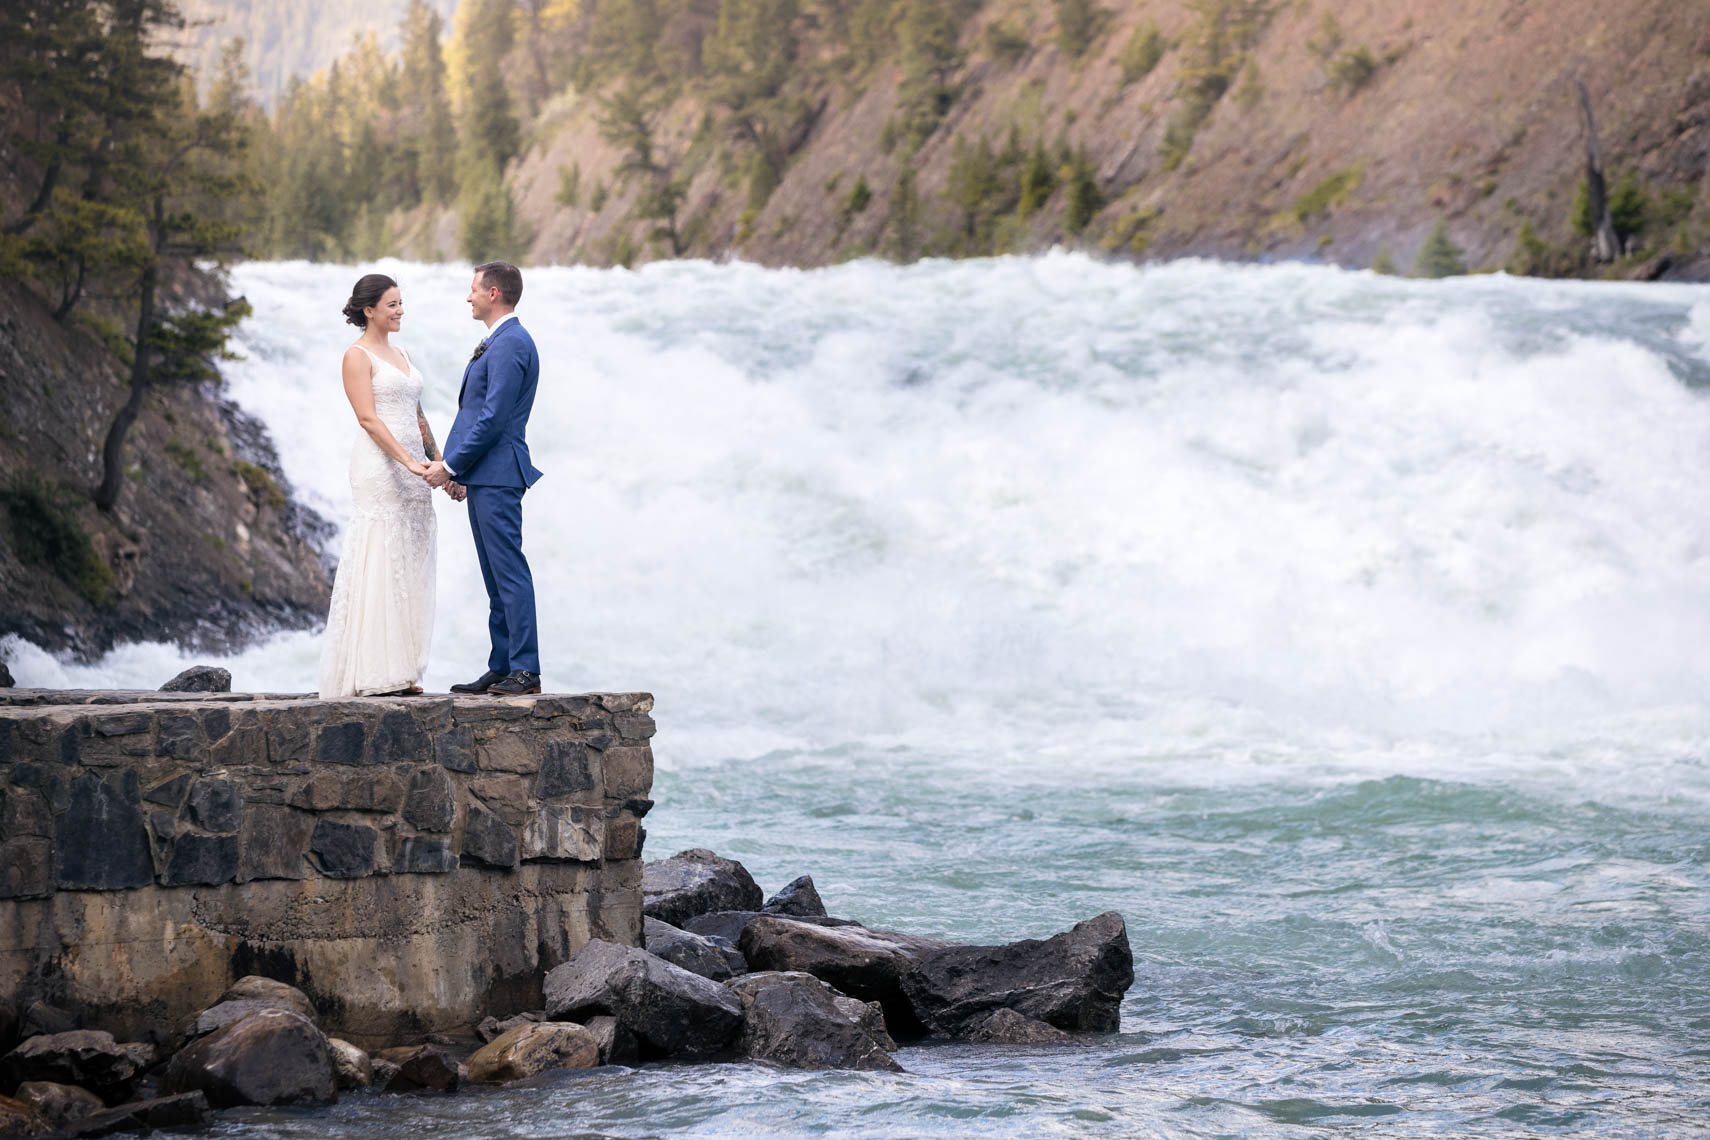 Bride and groom by a waterfall in Banff, Alberta